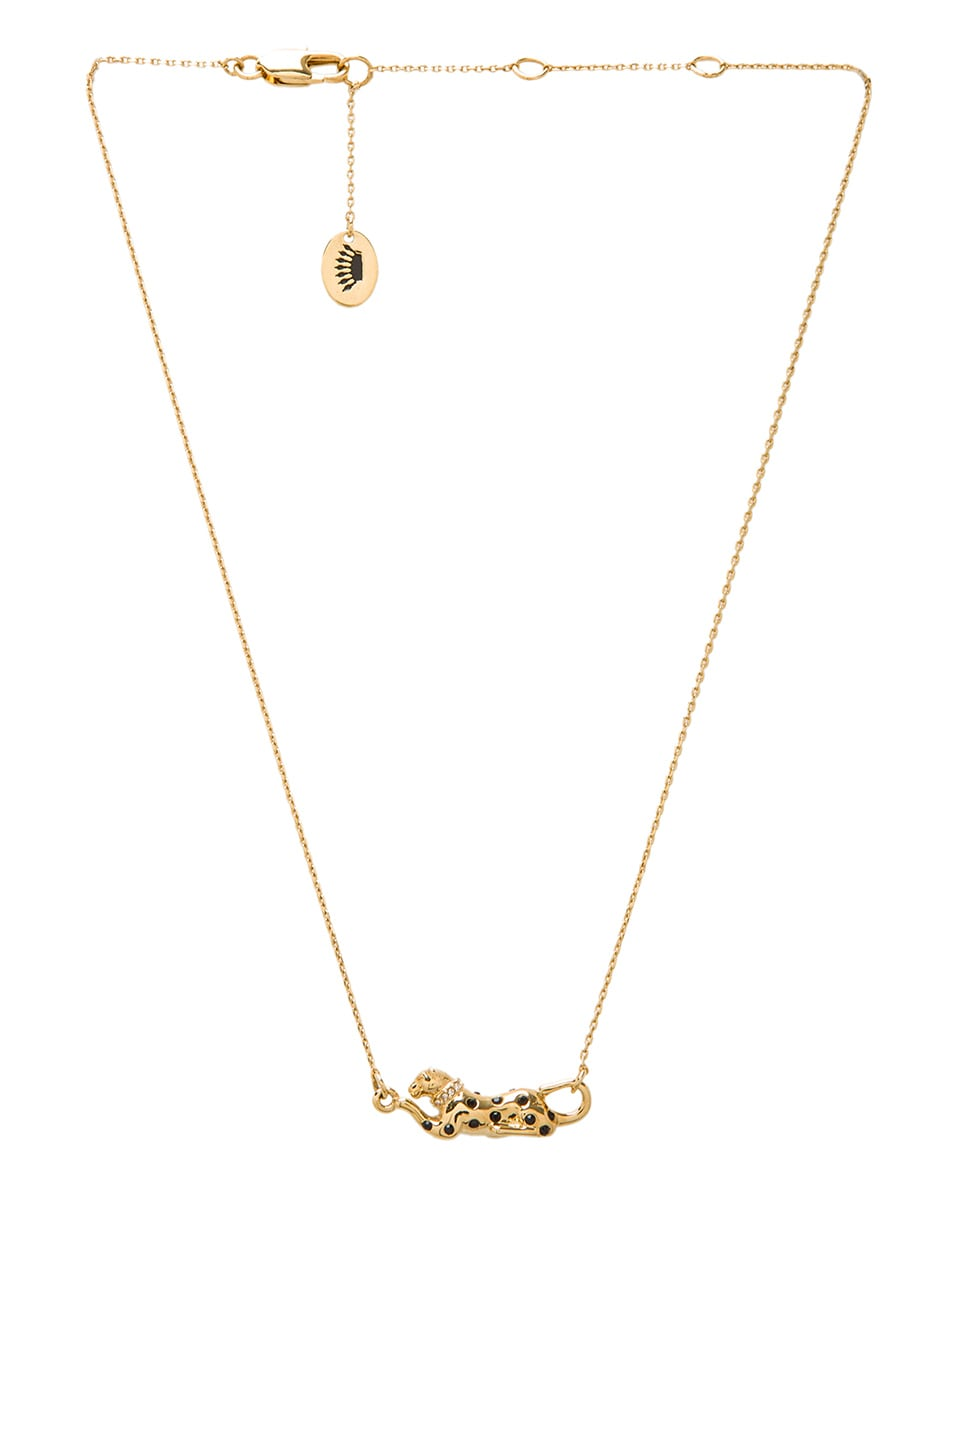 Juicy Couture Punk Panther Charm Necklace in Gold